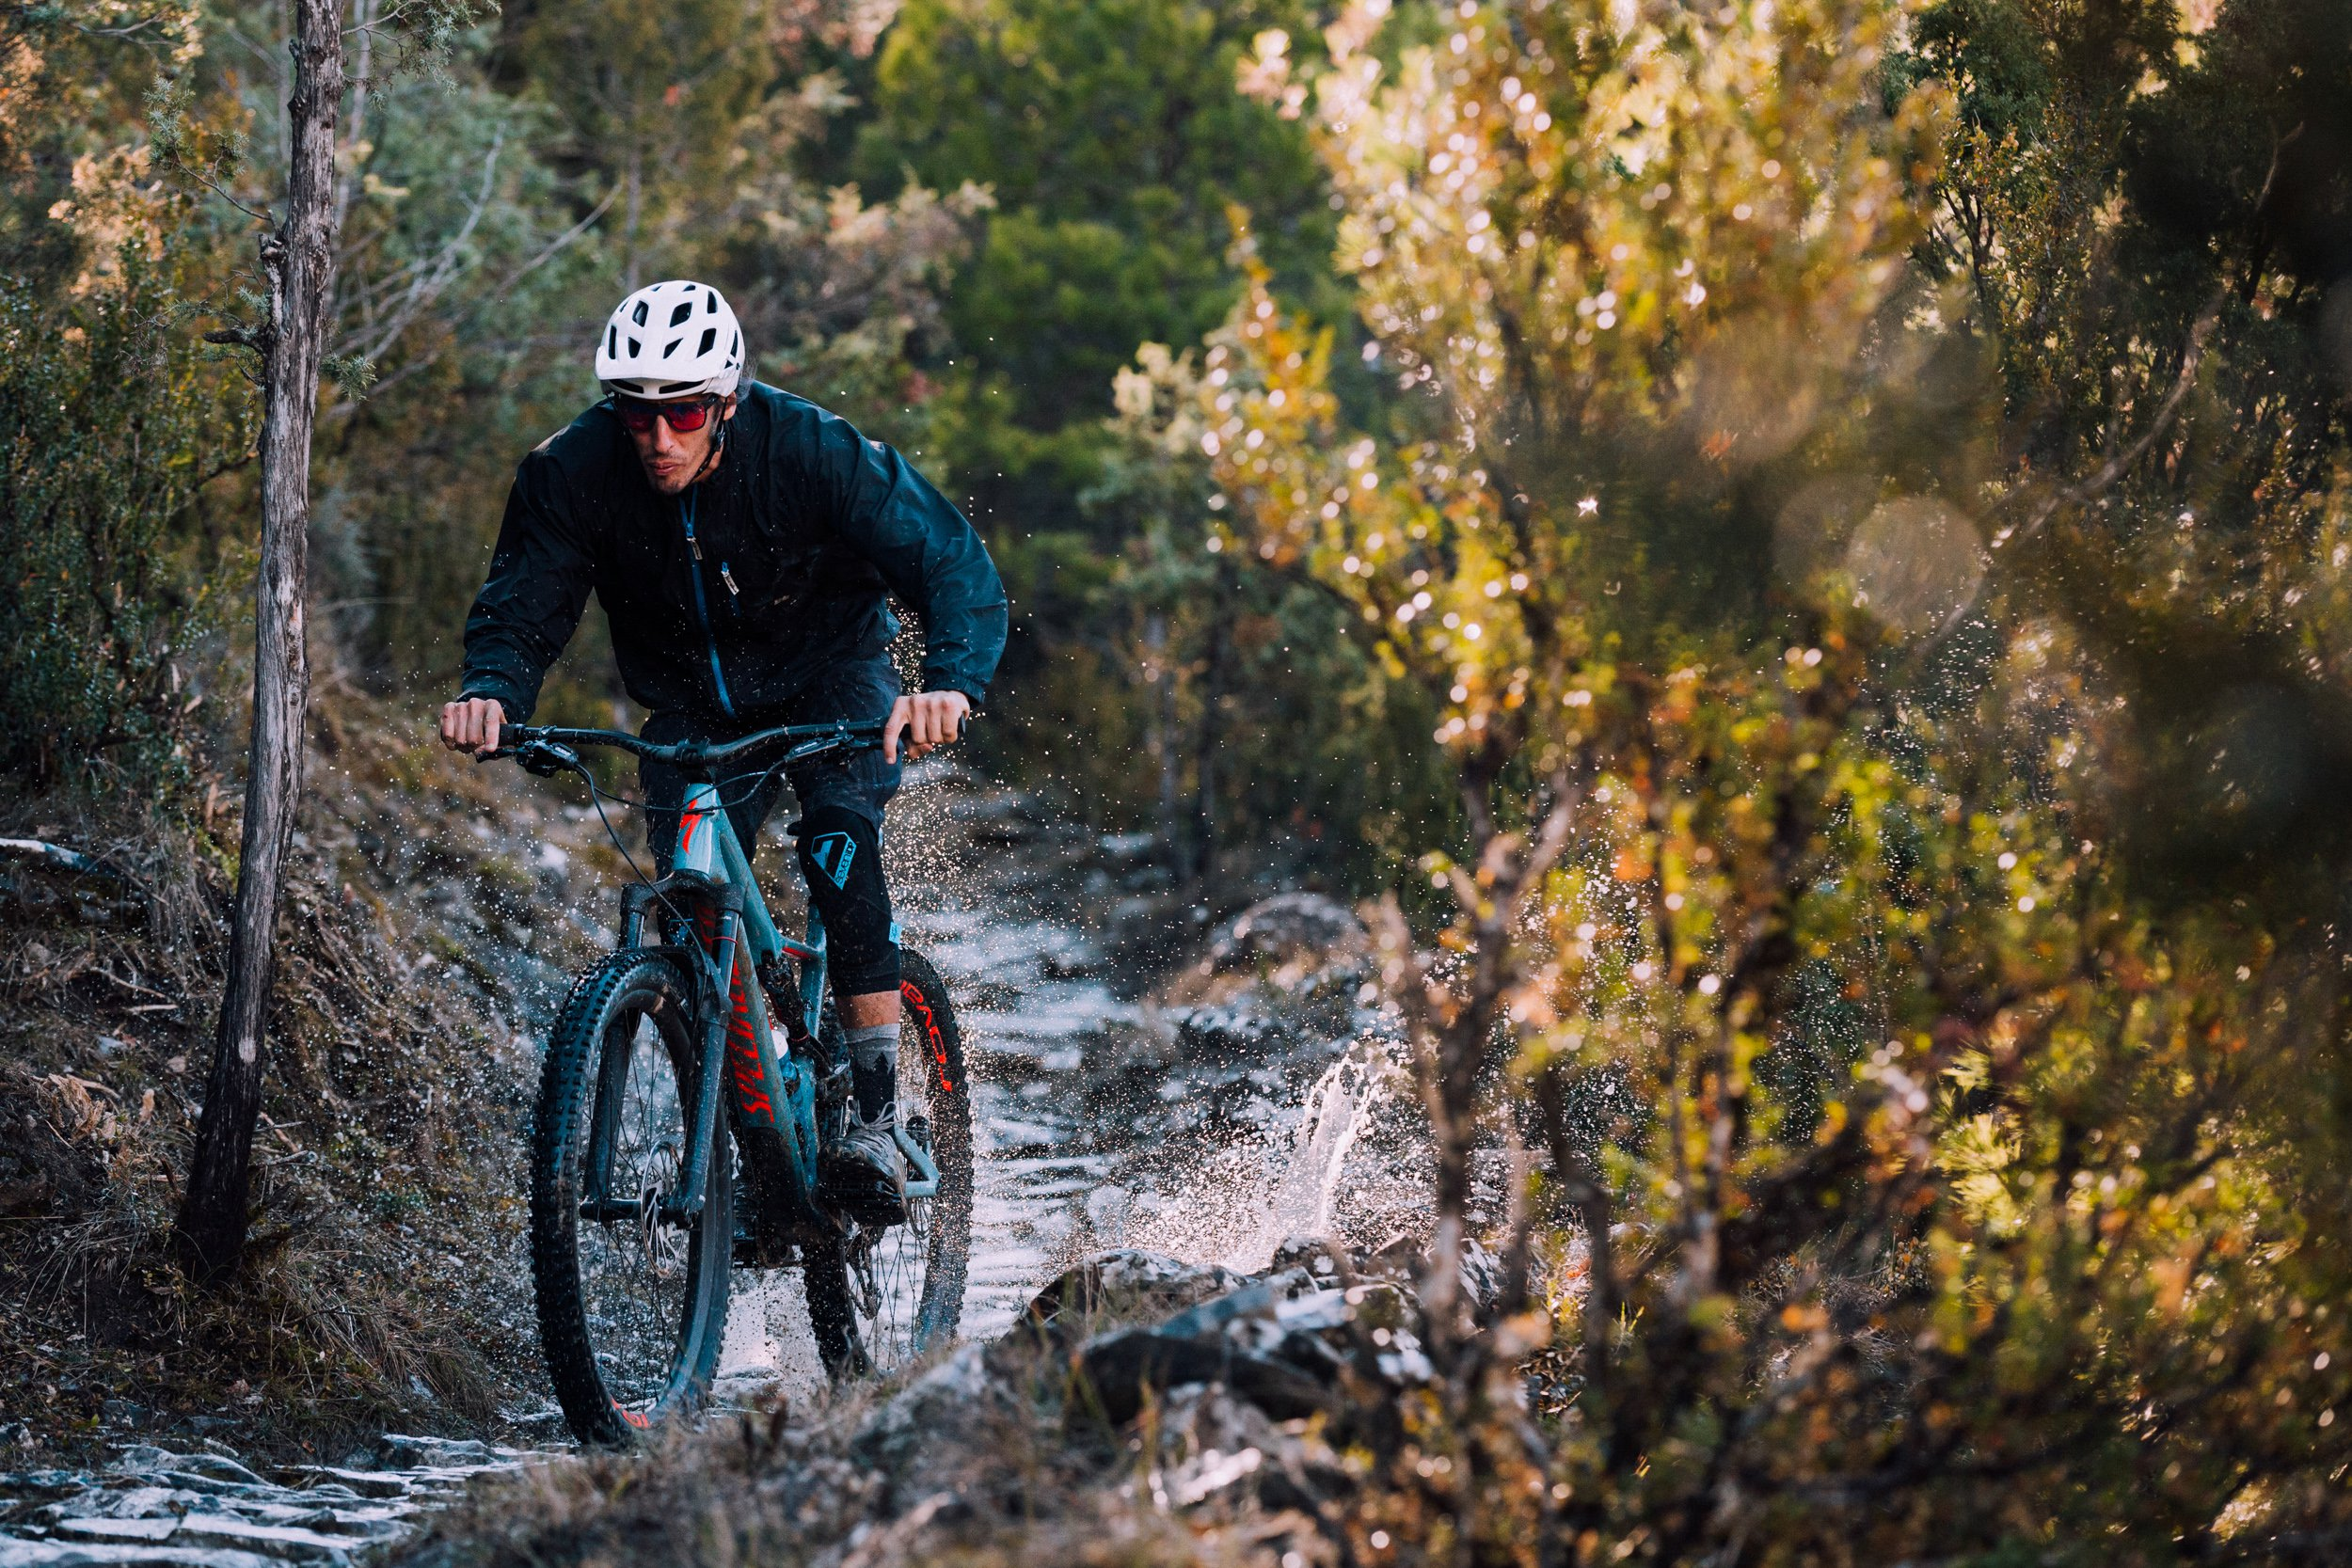 AJ Barlas riding the 2018 Specialized Stumpjumper 29 in Spain